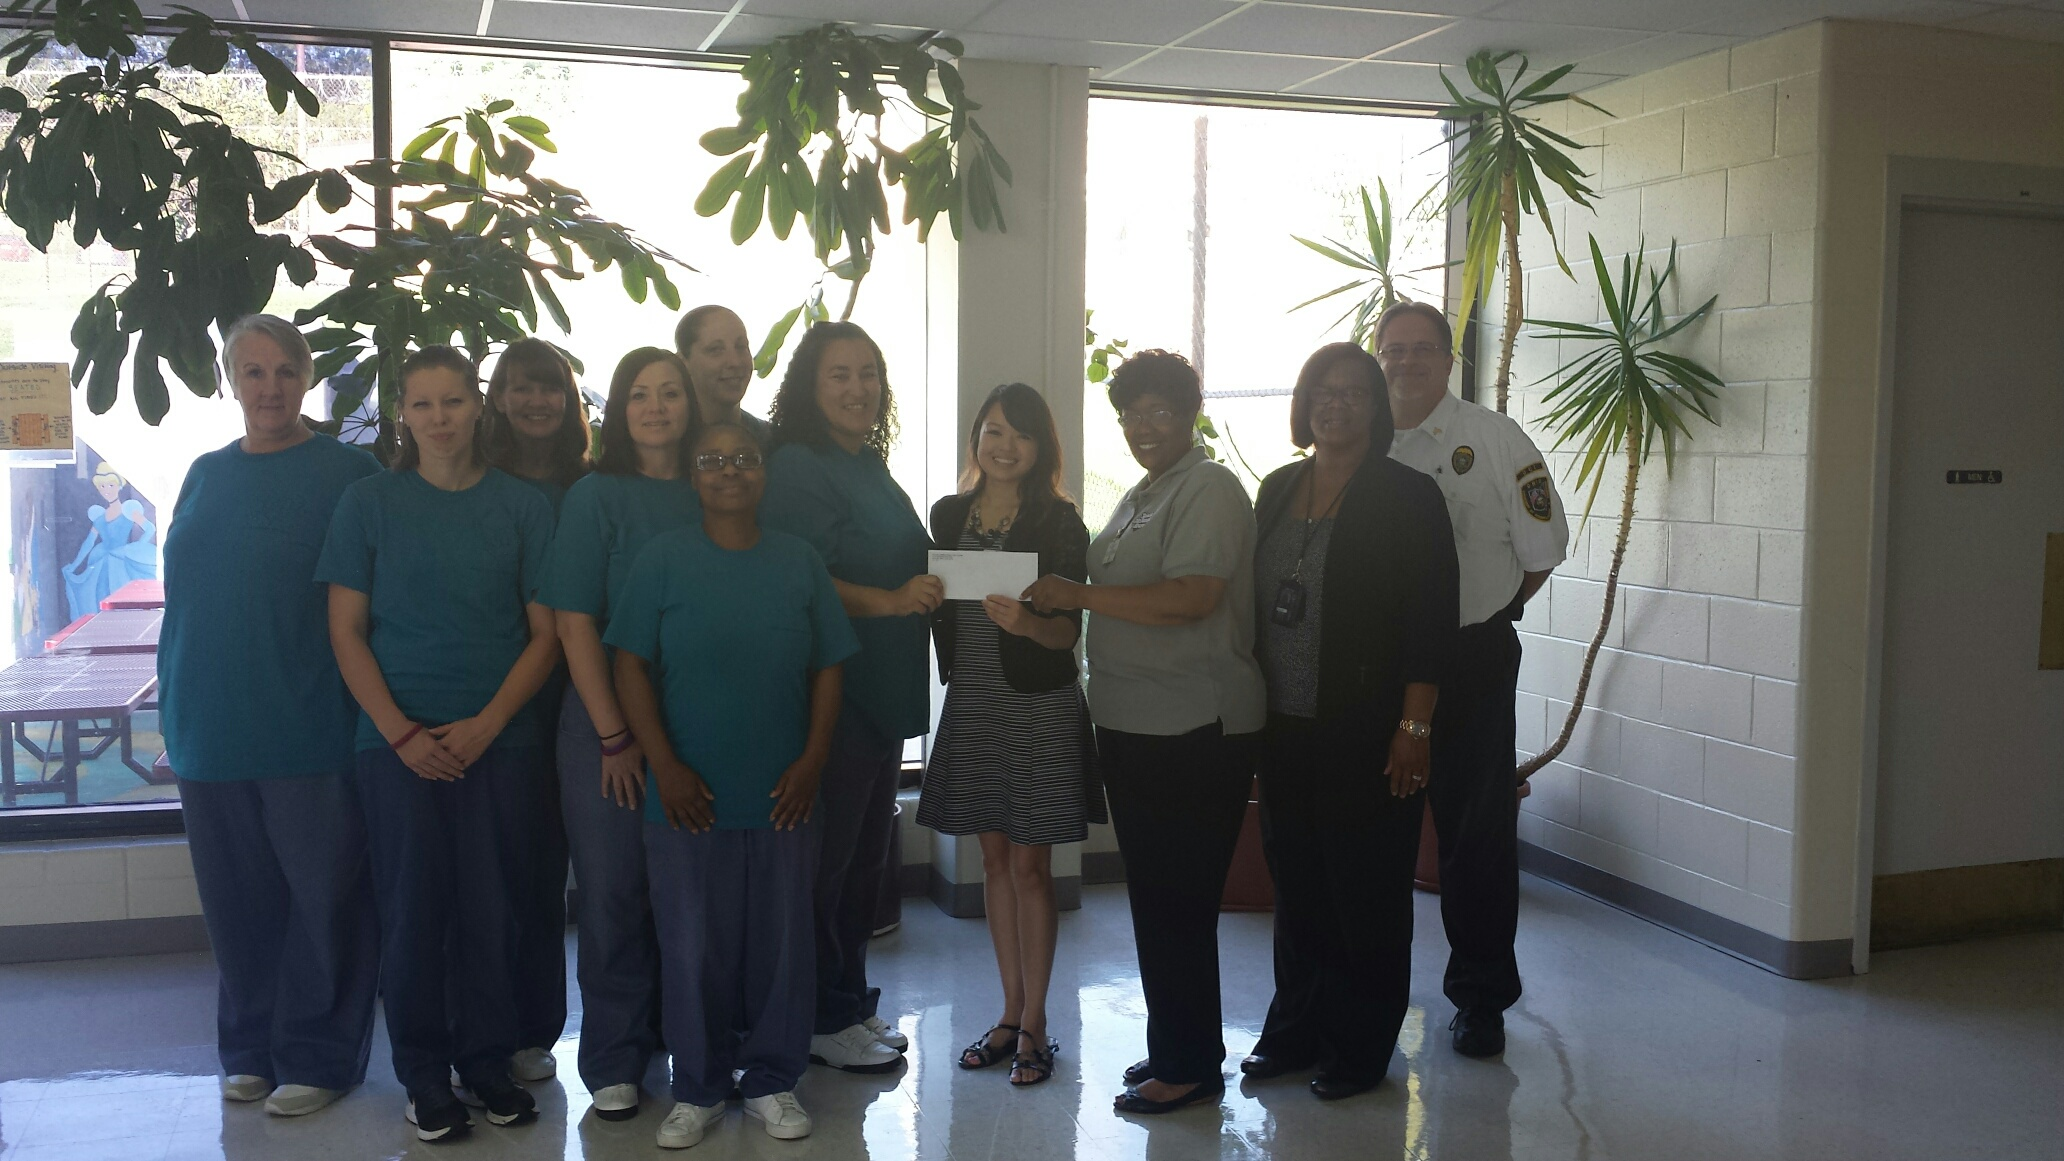 Dayton Correctional Institution (DCI) Donates to the Ronald McDonald House